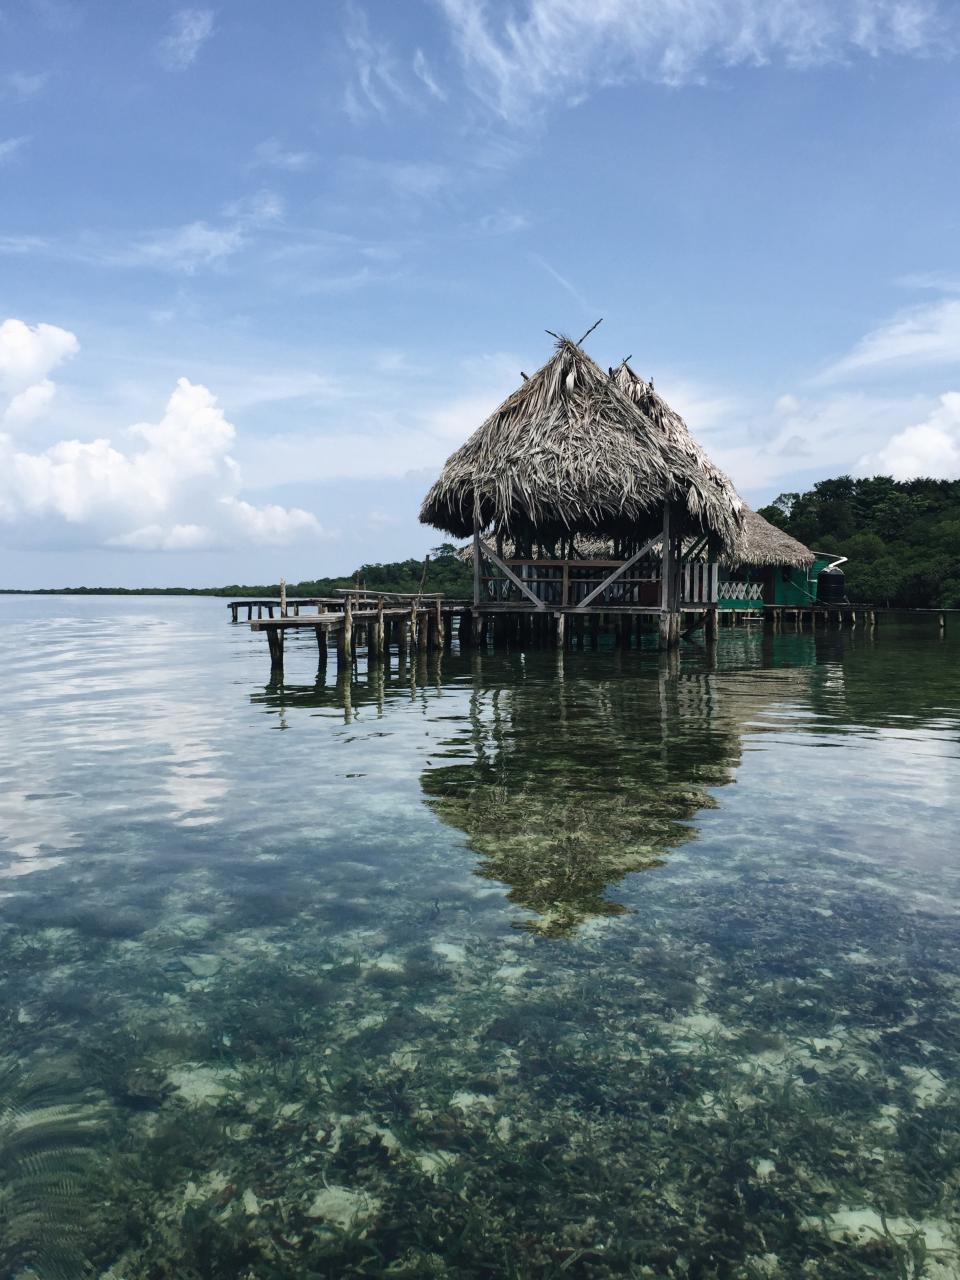 hut vacation water clear corals nature reflection sky clouds trees bridge adventure travel